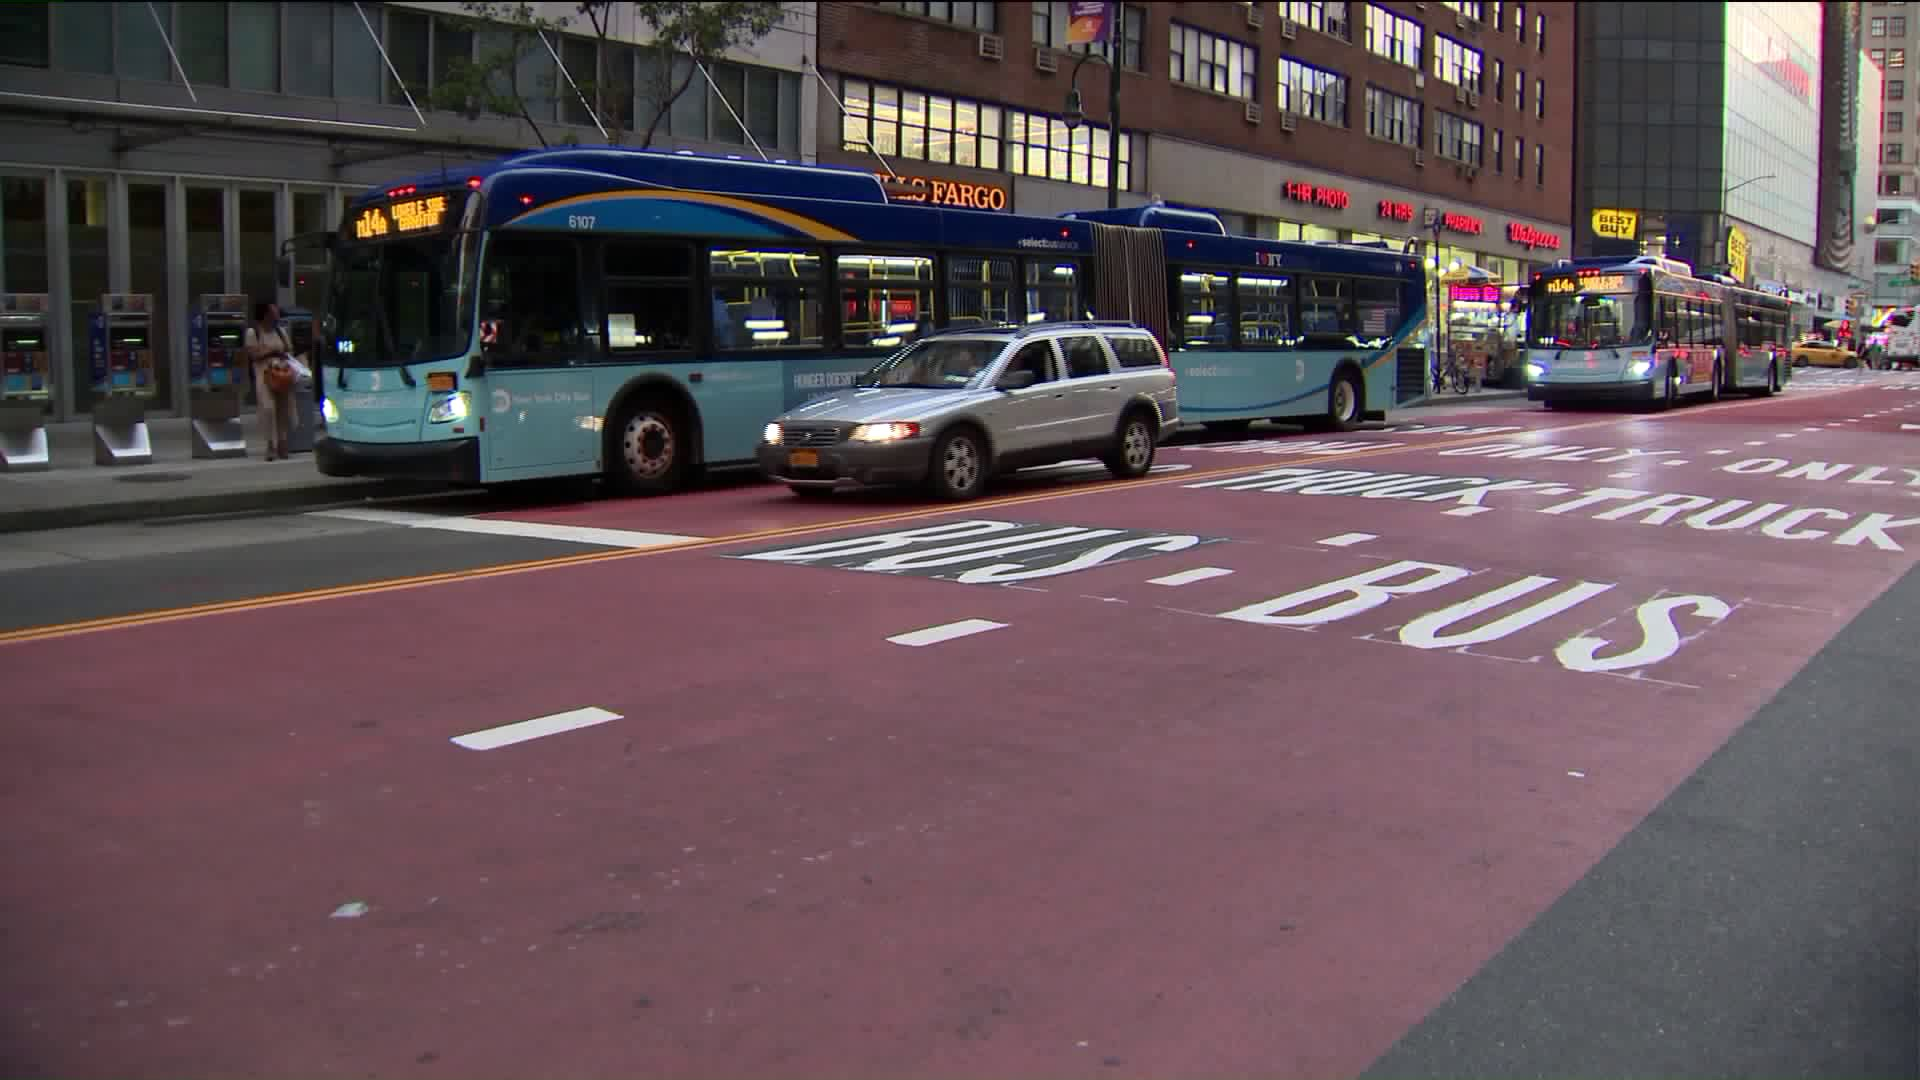 Judge blocks 14th Street busway days before rollout